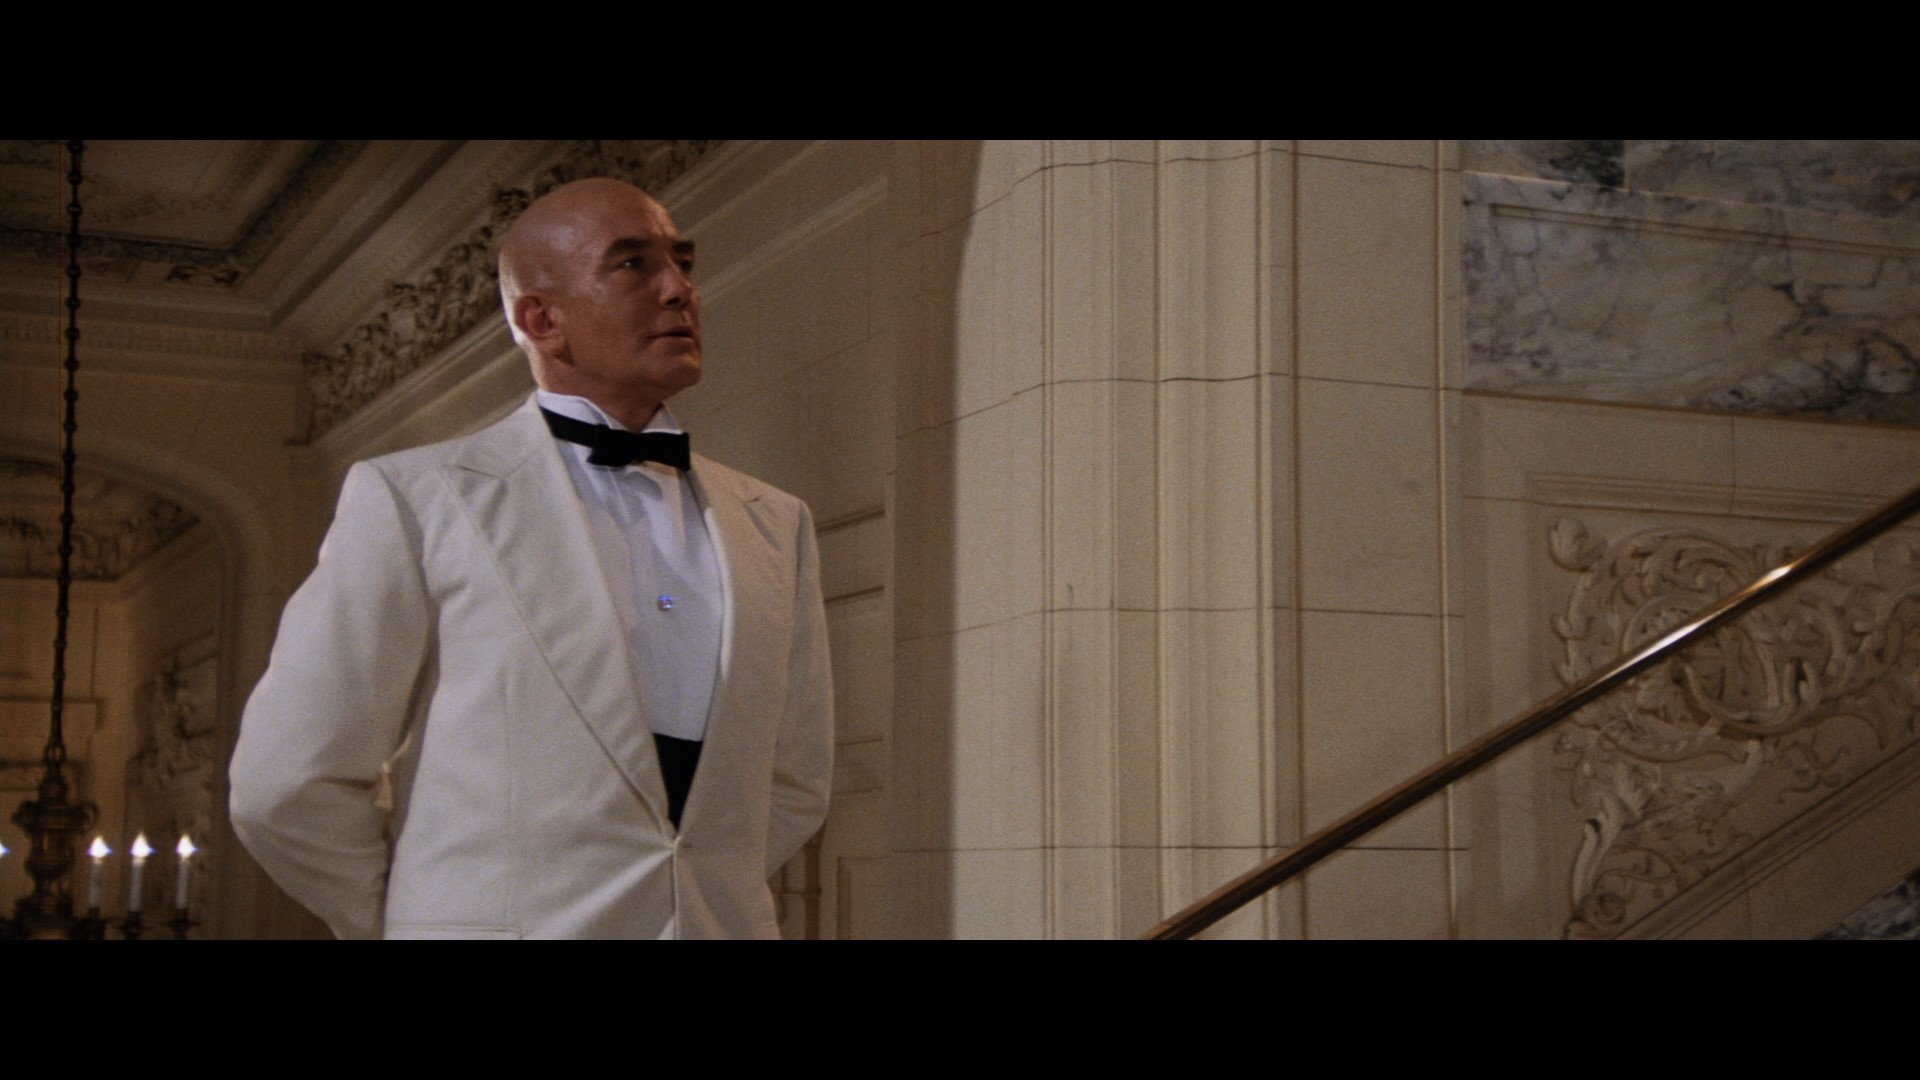 ANNIE (1982) - Daddy Warbucks' (Albert Finney) Tuxedo Jacket - Image 9 of 12